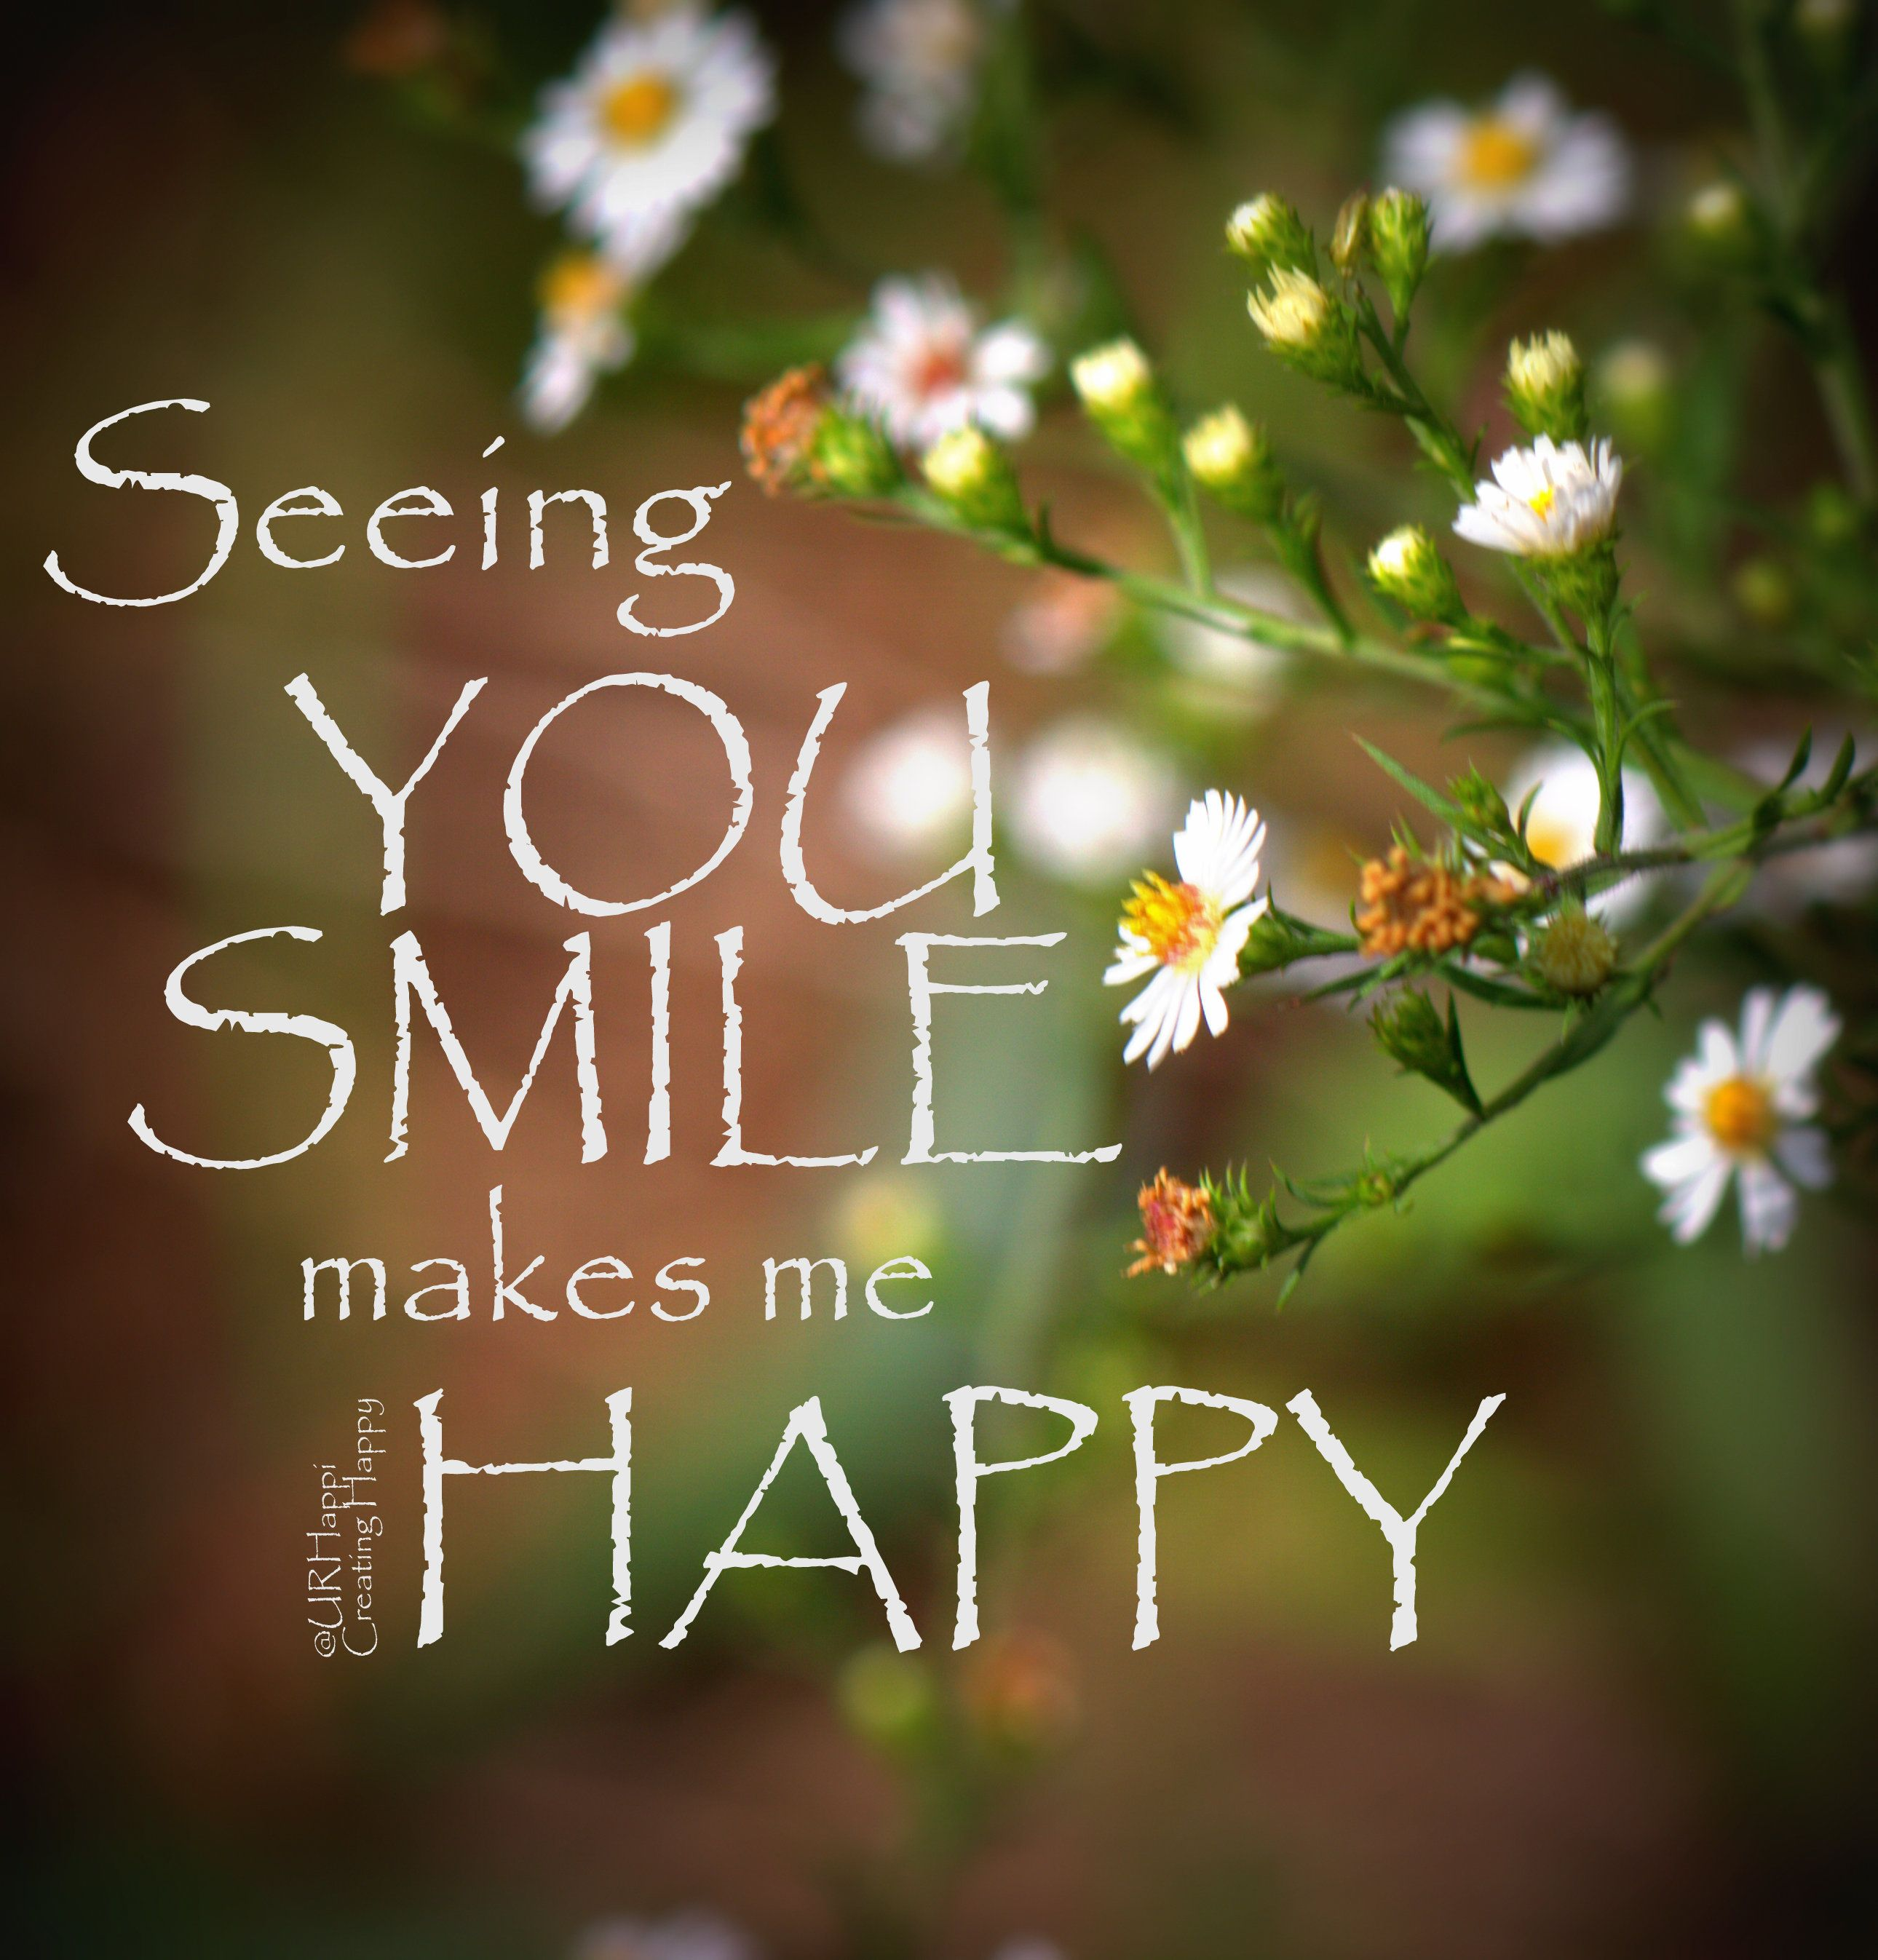 Seeing You Smile Makes Me Happy Creatinghappy Quotes Smiling Behappy Flowers Georgia Photography Your Smile Happy Smile Happy